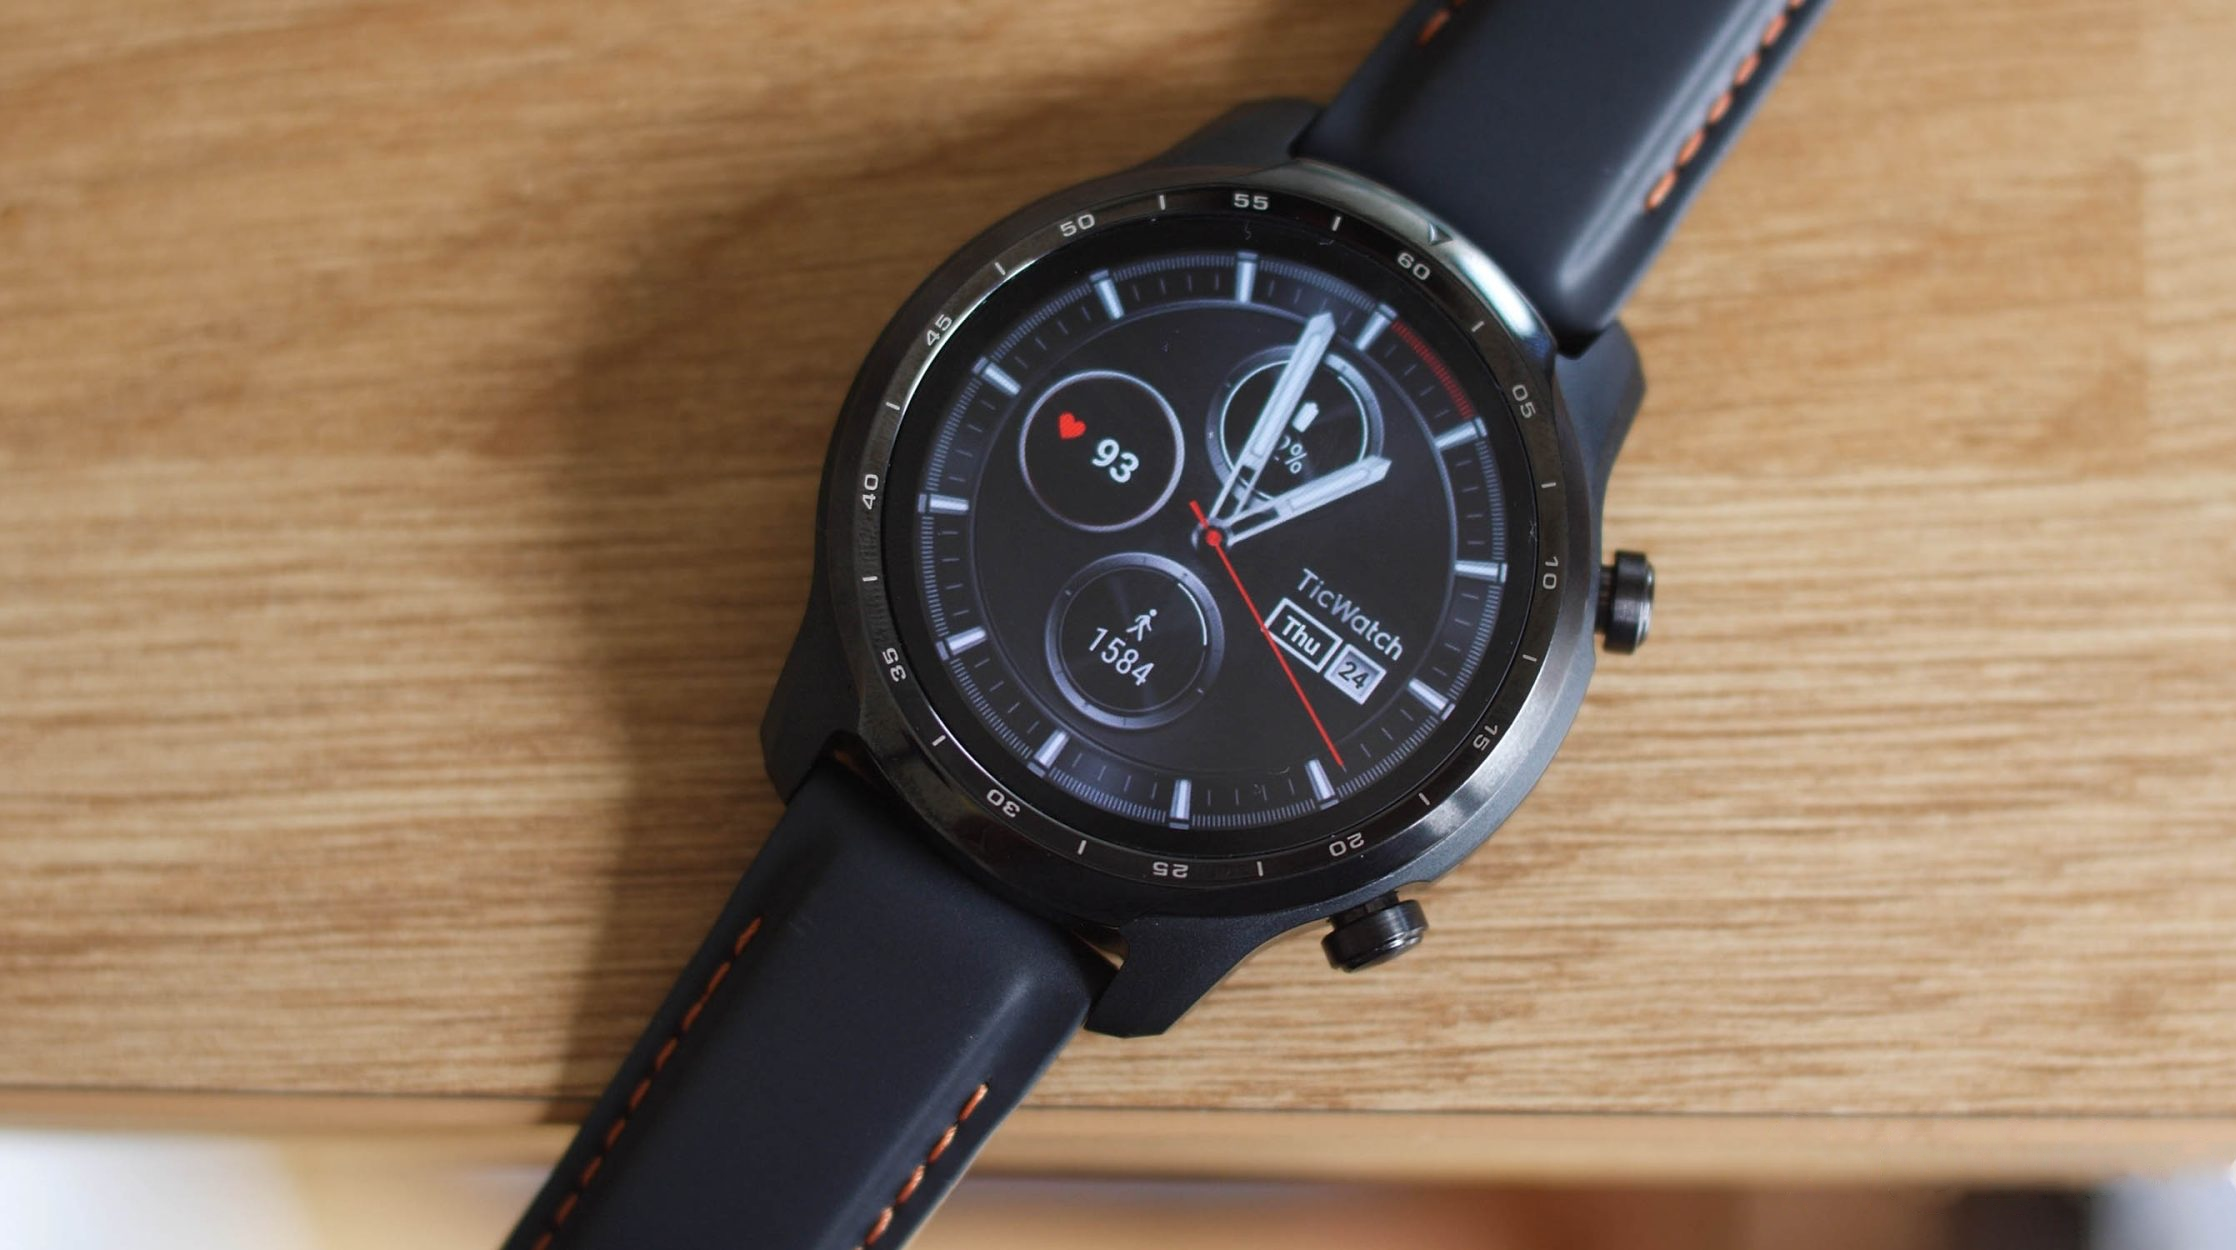 Mobvoi выпустила в Европе смарт-часы TicWatch Pro 3 с LTE и чипом Snapdragon Wear 4100 за 359